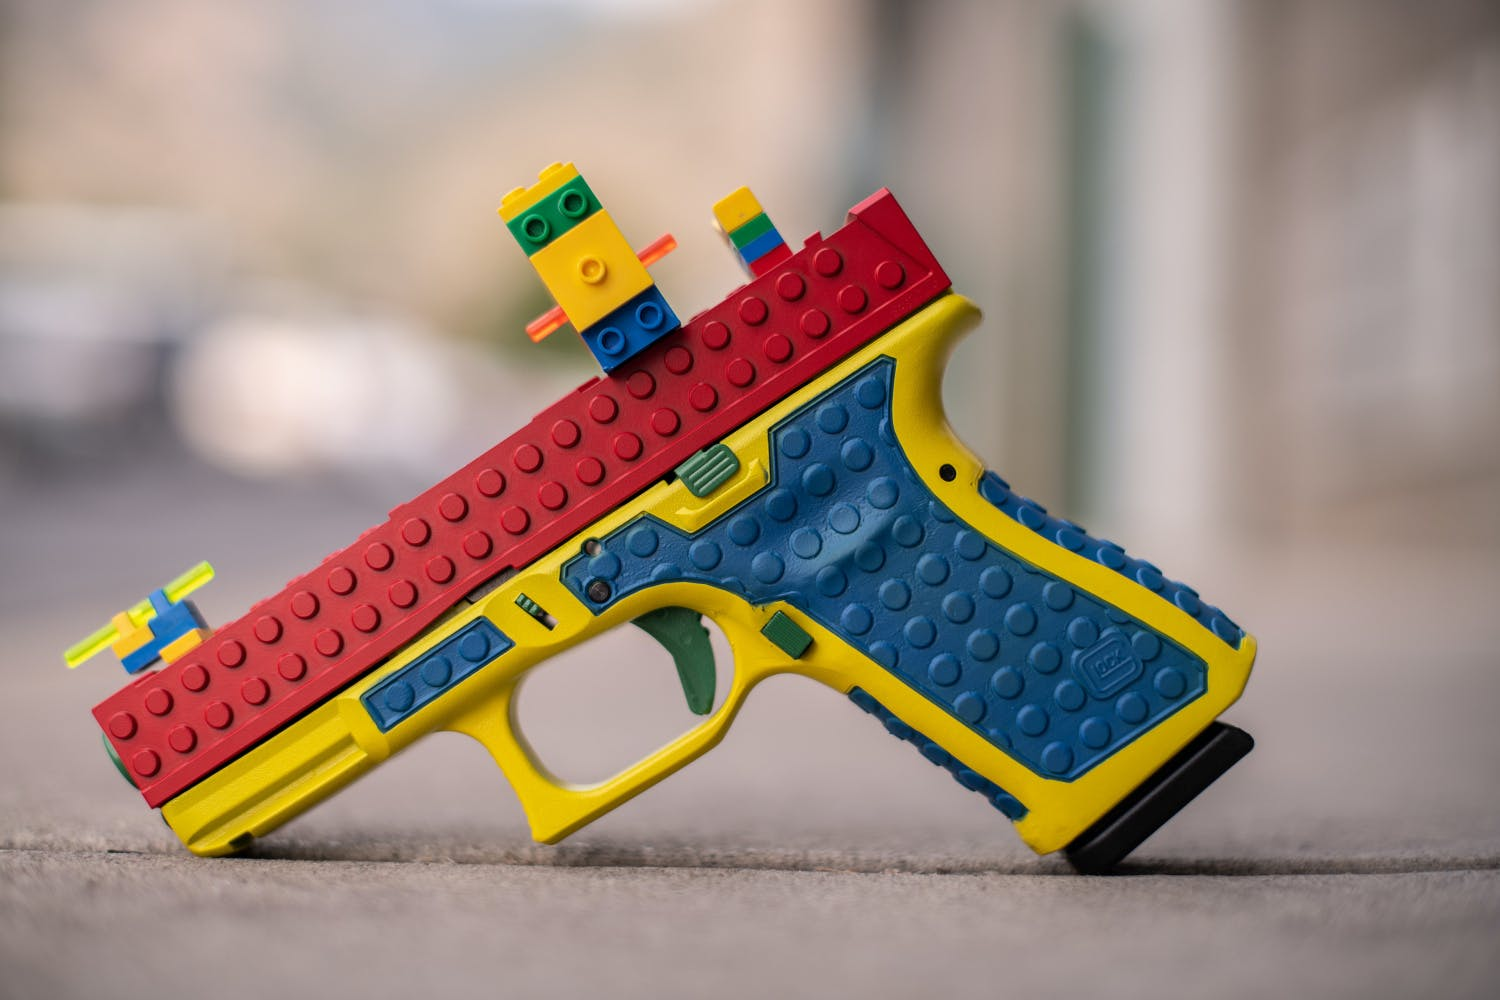 Gun Resembling Lego Toy Sparks Backlash in the US